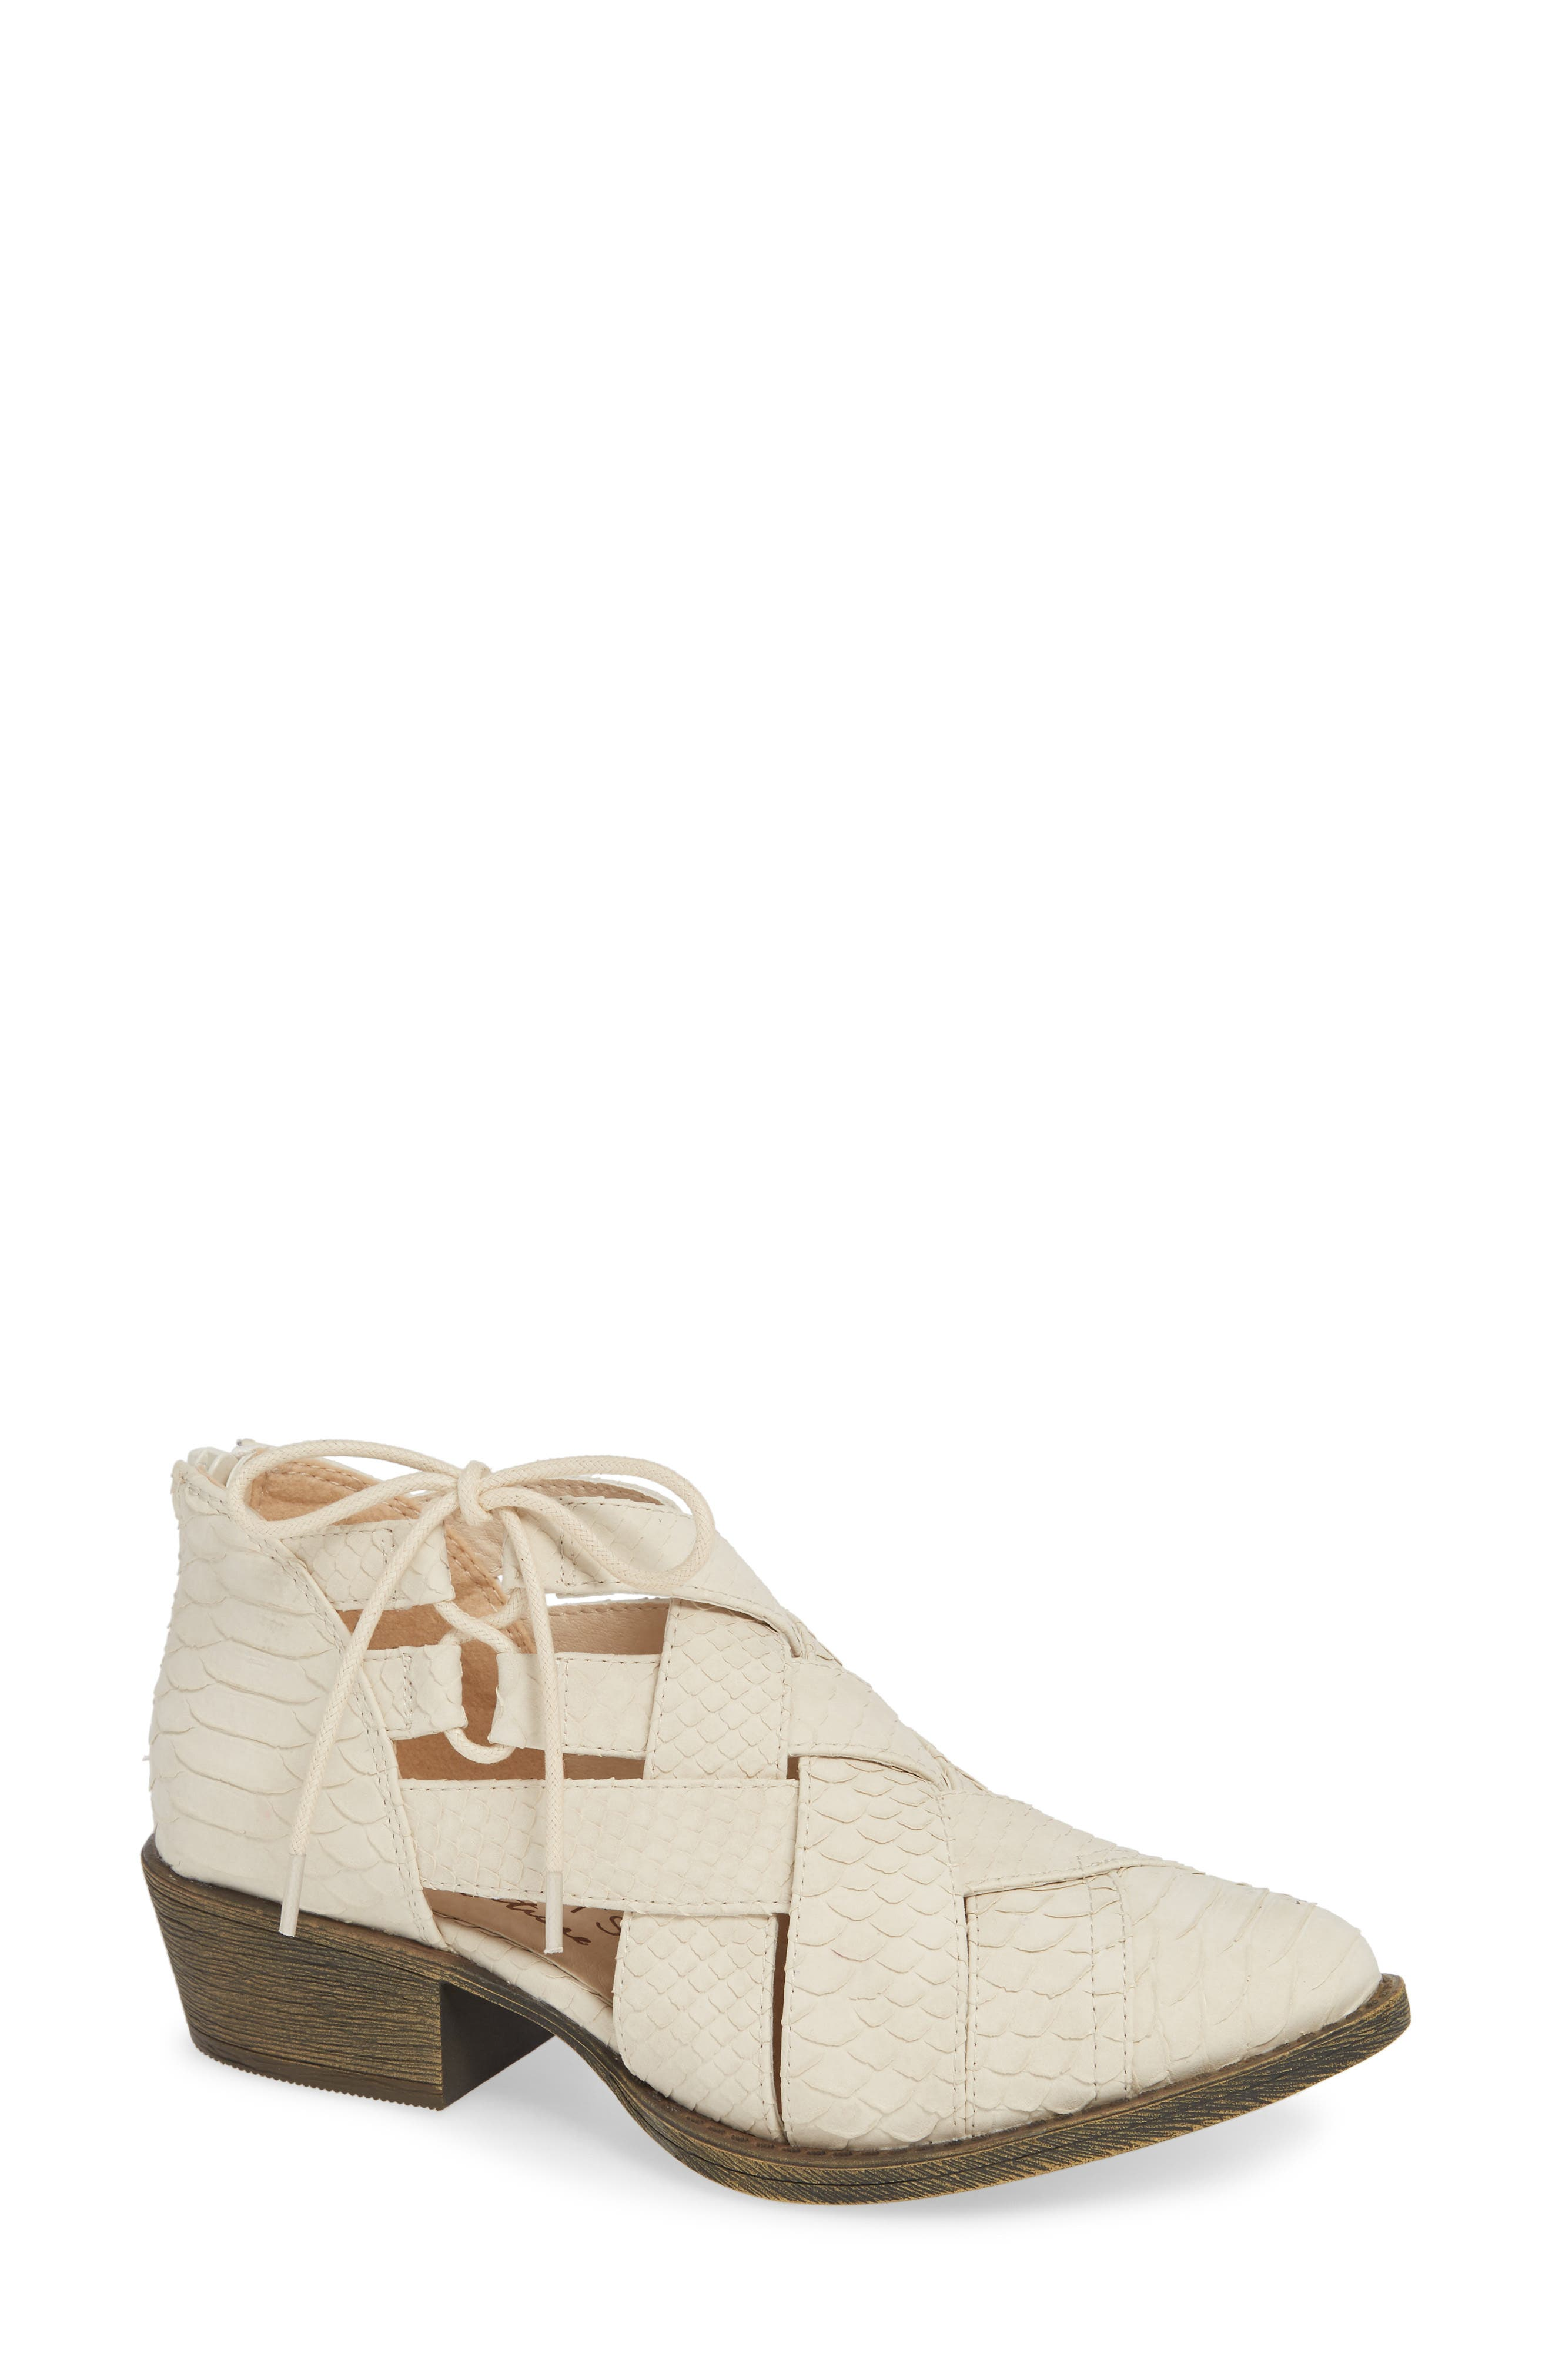 Coconuts By Matisse Lux Bootie, Ivory